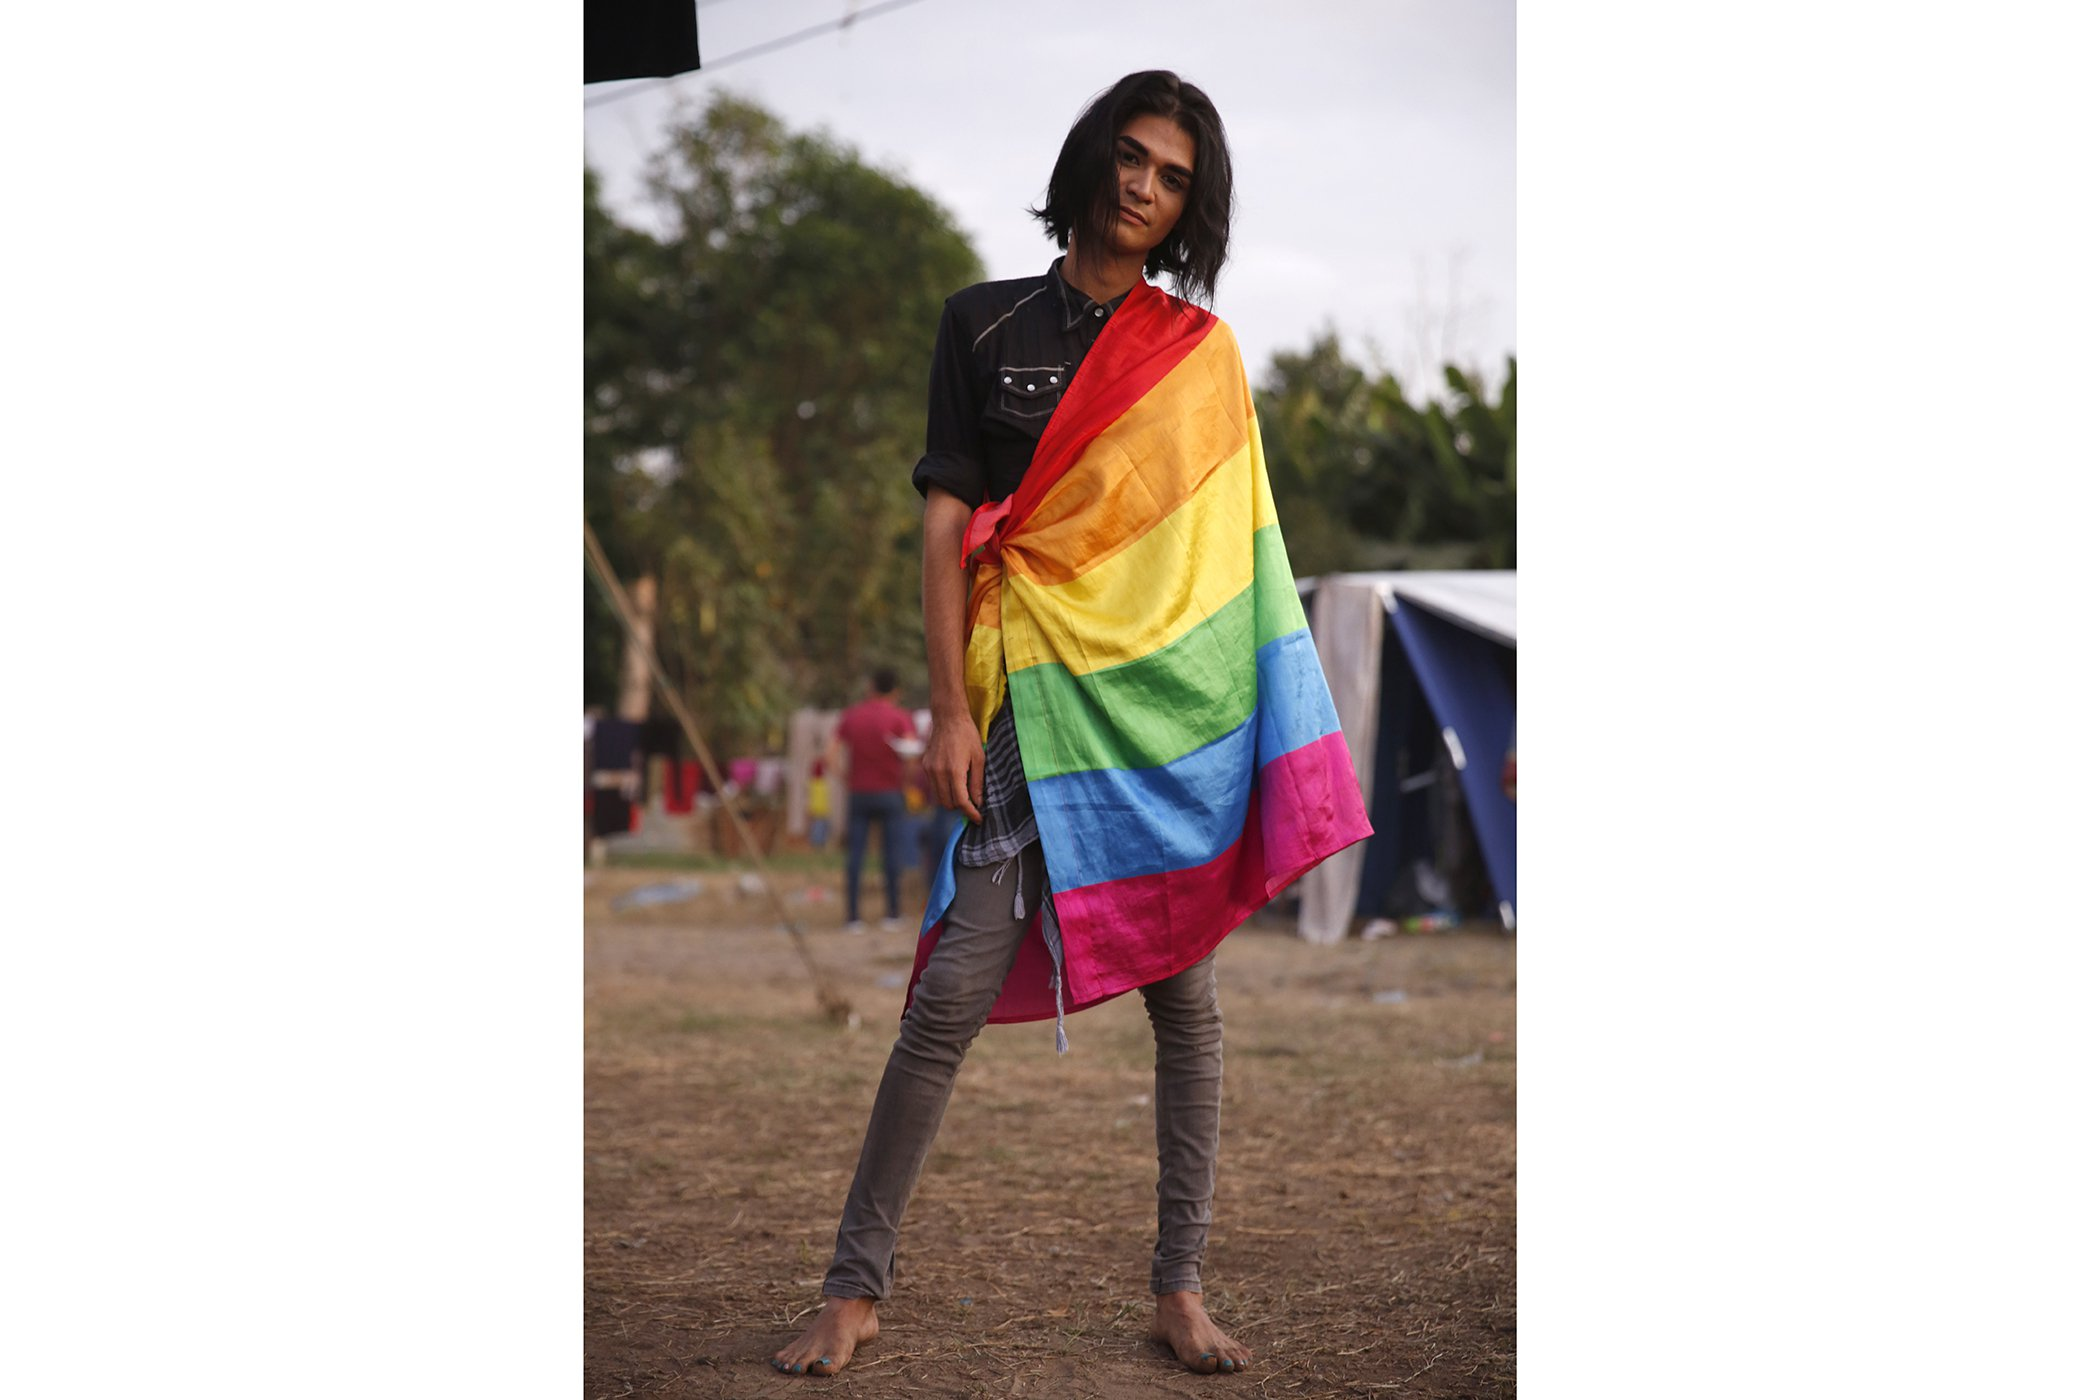 Transgender-Rights-Equality-For-All-Road-To-Recovery-001.jpg